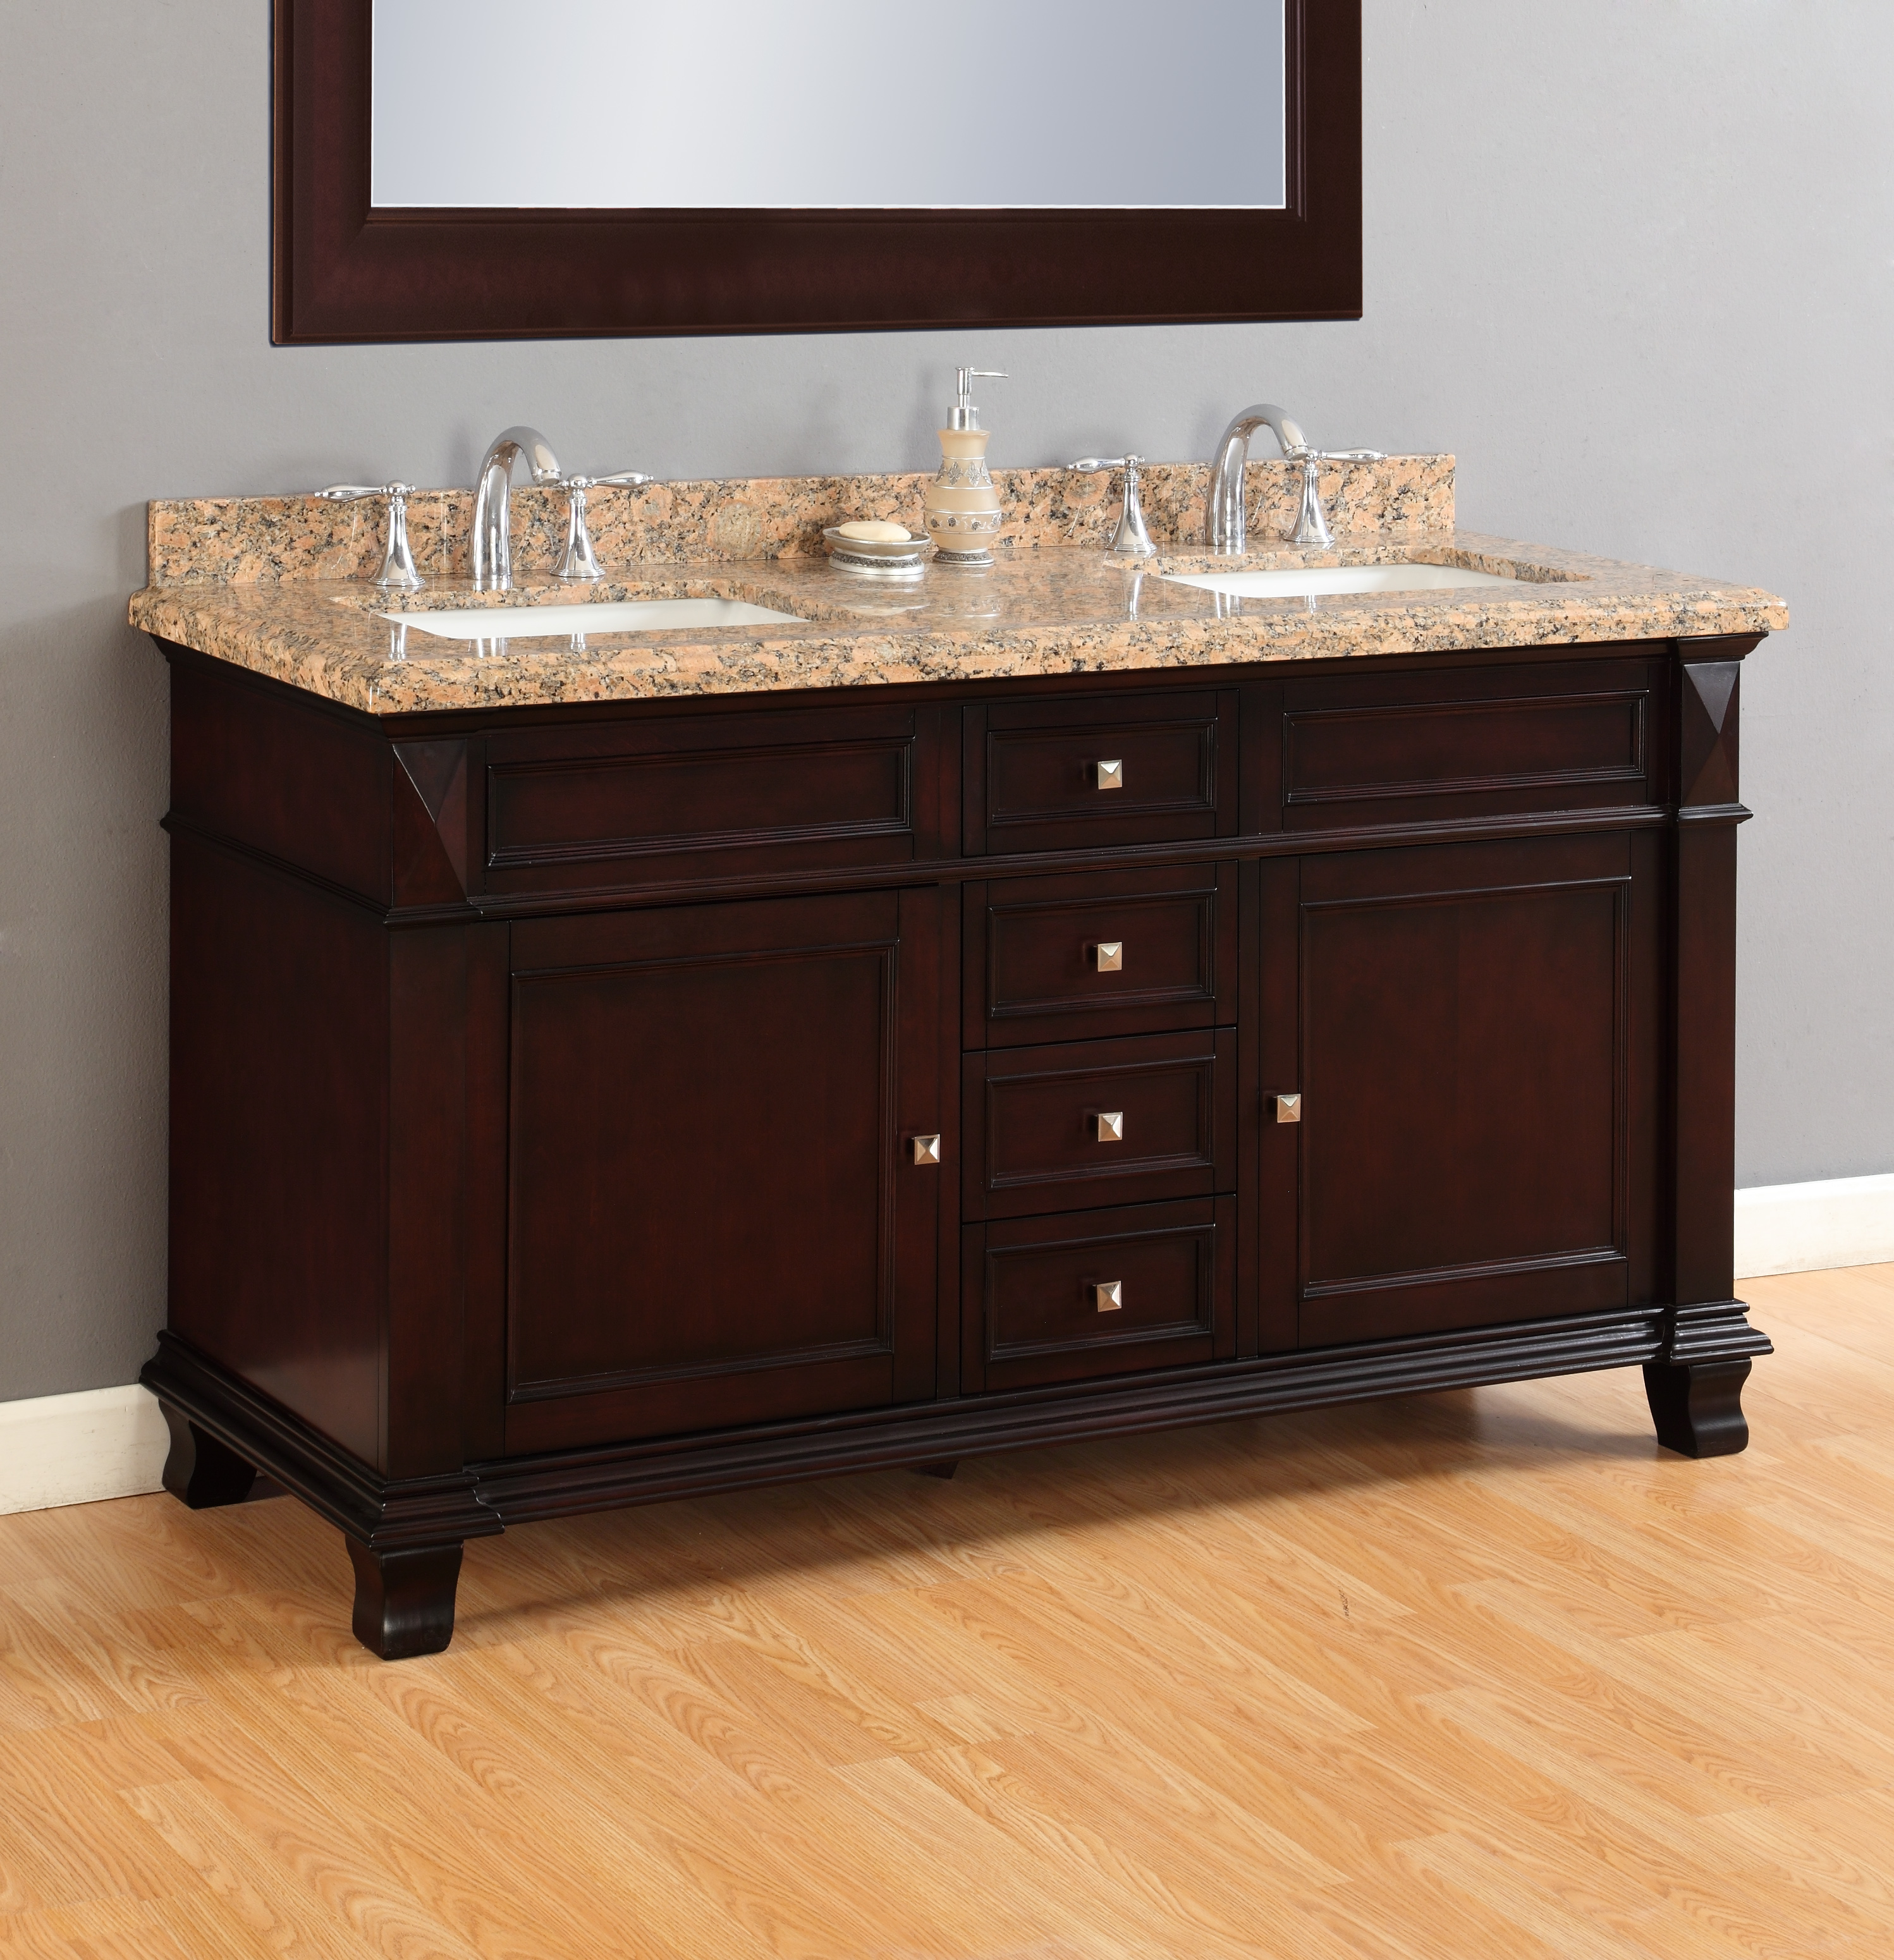 60 in double sink vanity. Mason 60  Double Sink Vanity Mission Hills Furniture